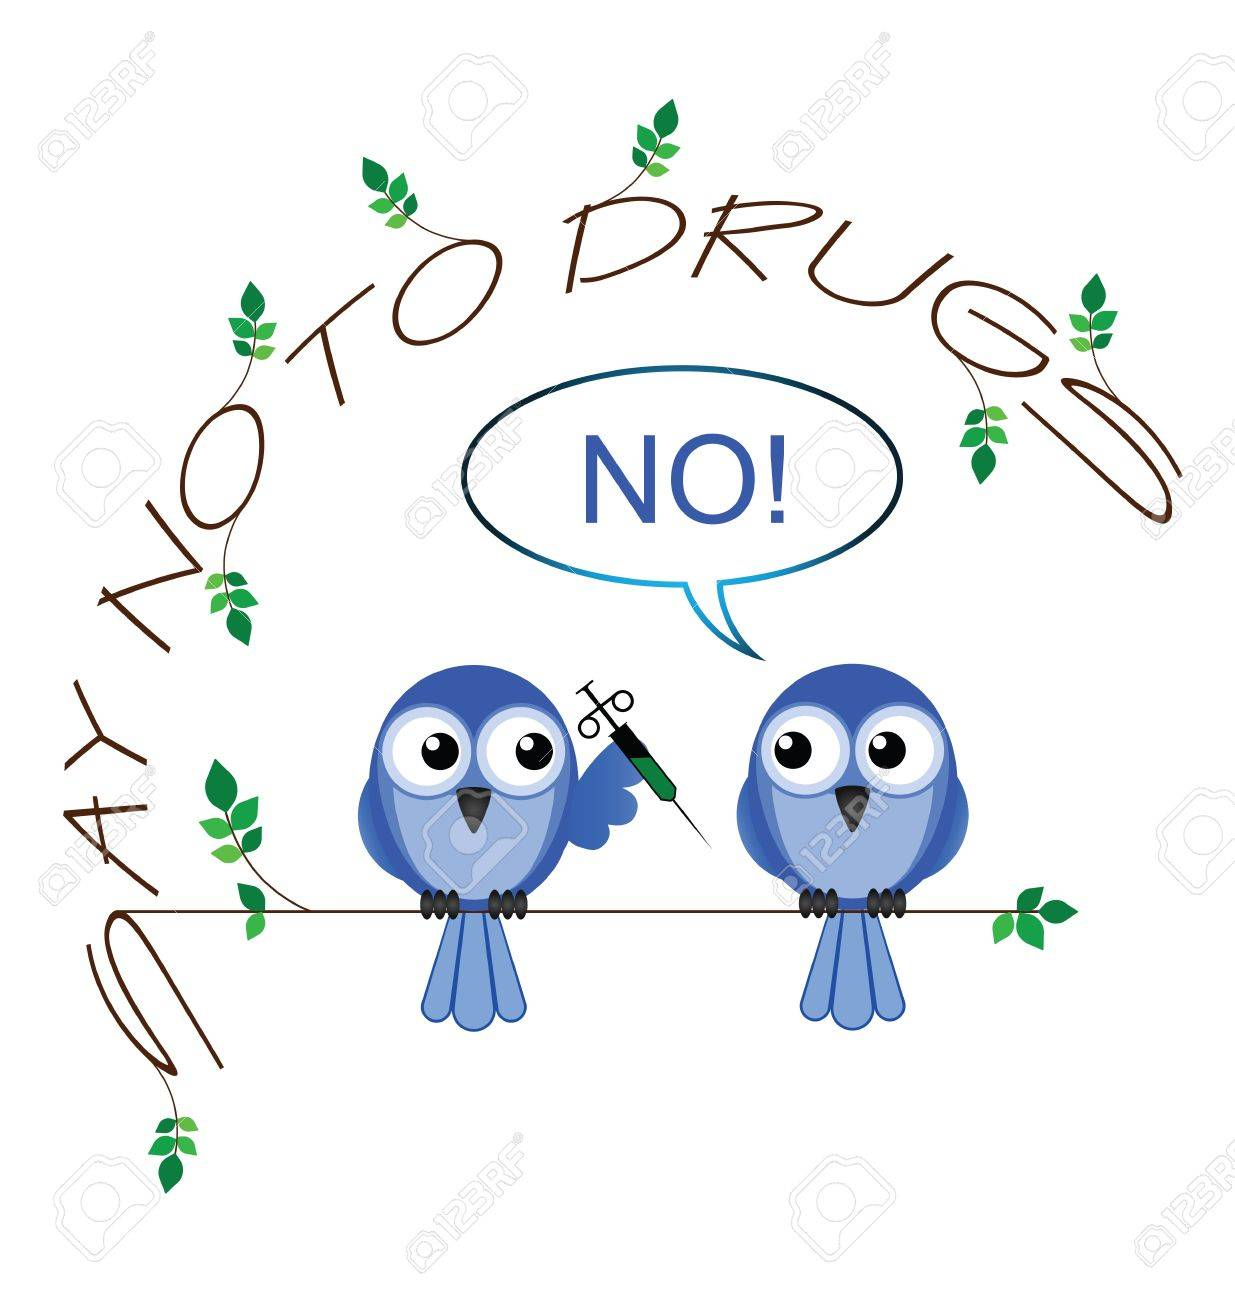 No to drugs twig text message isolated on white background Stock Vector - 14441078